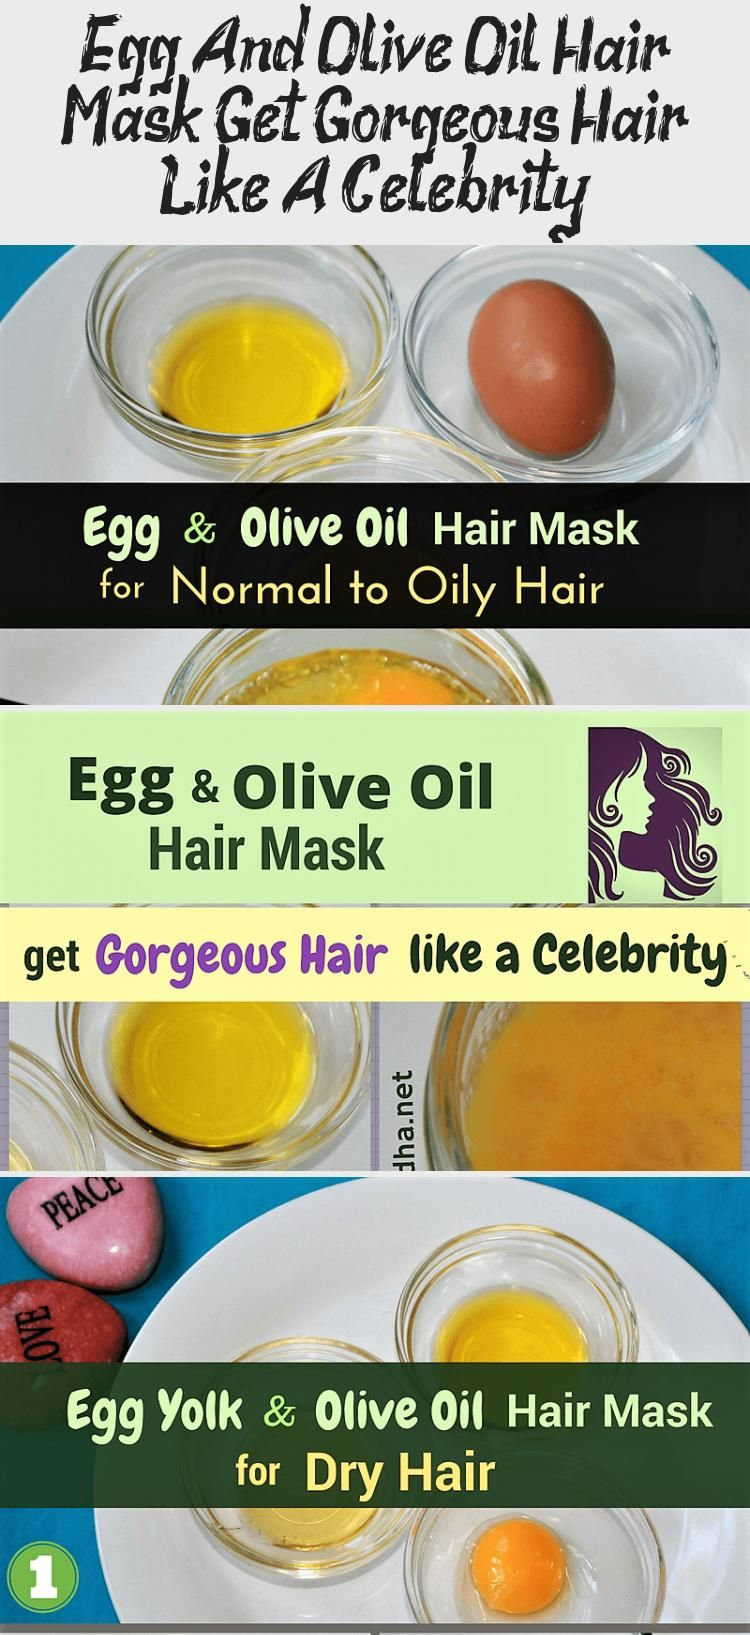 Supplement for Hair Growth} and olive oil and egg hair mask for hair growth #hairgrowthVitamins #CastorOilhairgrowth #hairgrowthInAYear #hairgrowthTimeline #Promotehairgrowth